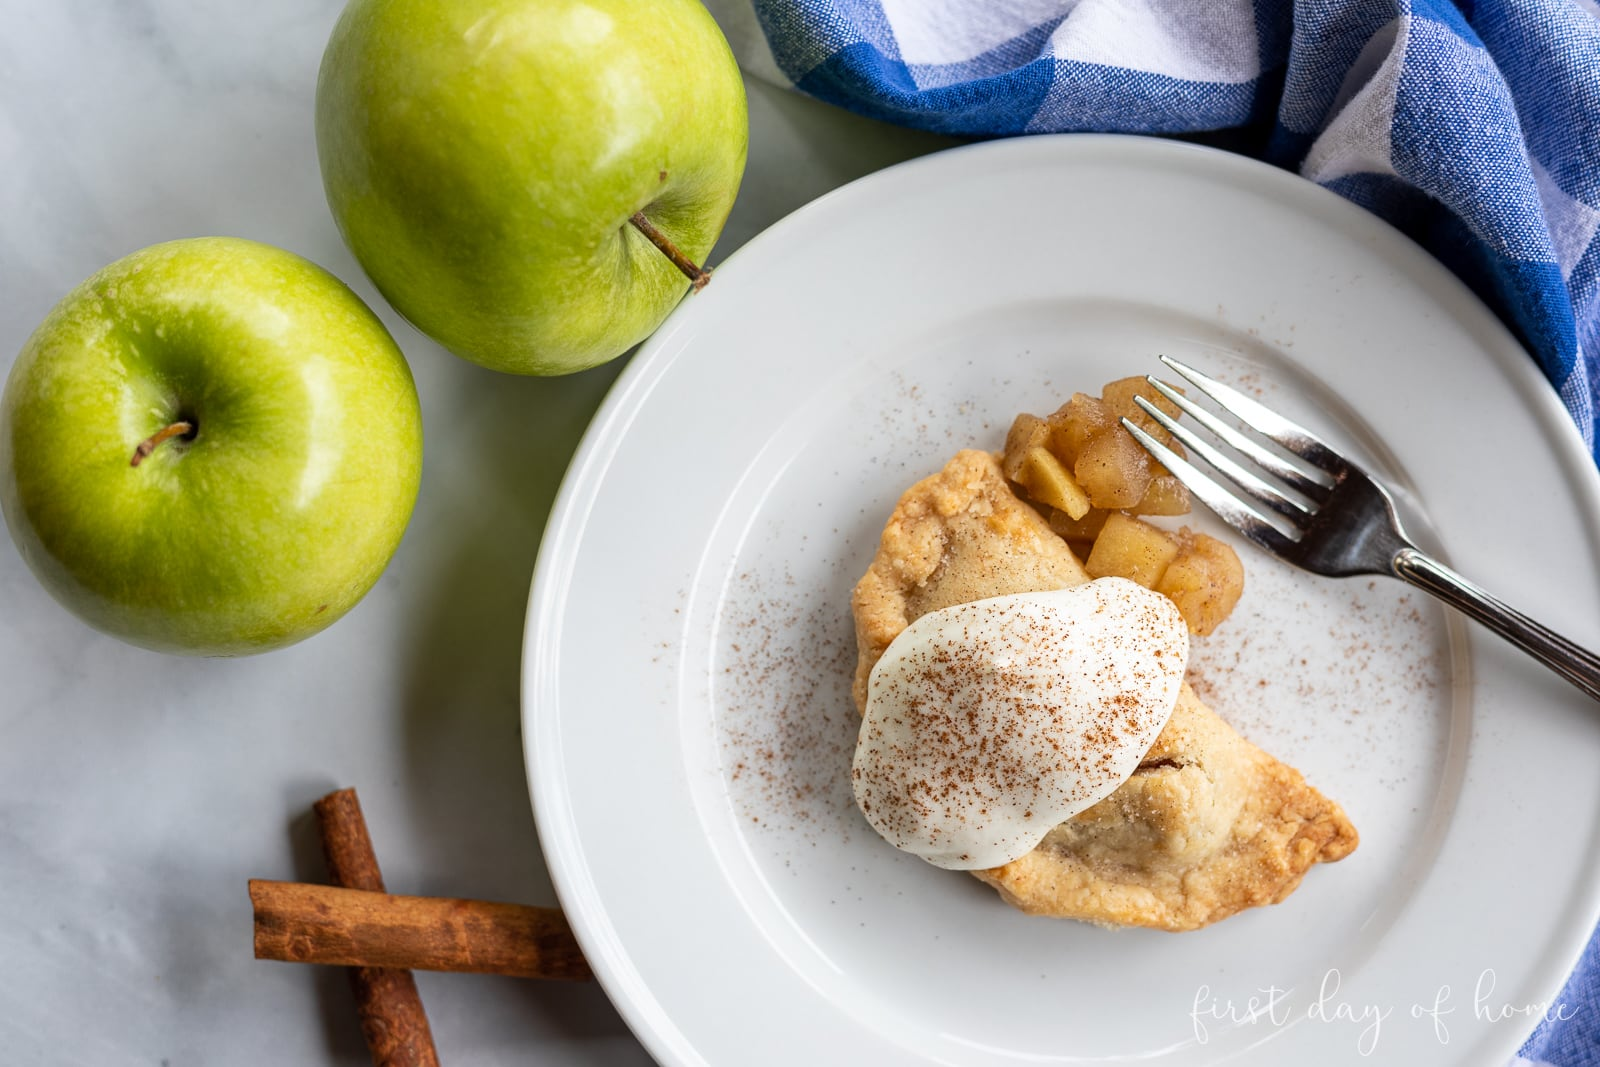 Empanada with apple filling served with homemade whipped cream and cinnamon sprinkles on top with green apples and cinnamon sticks alongside plate